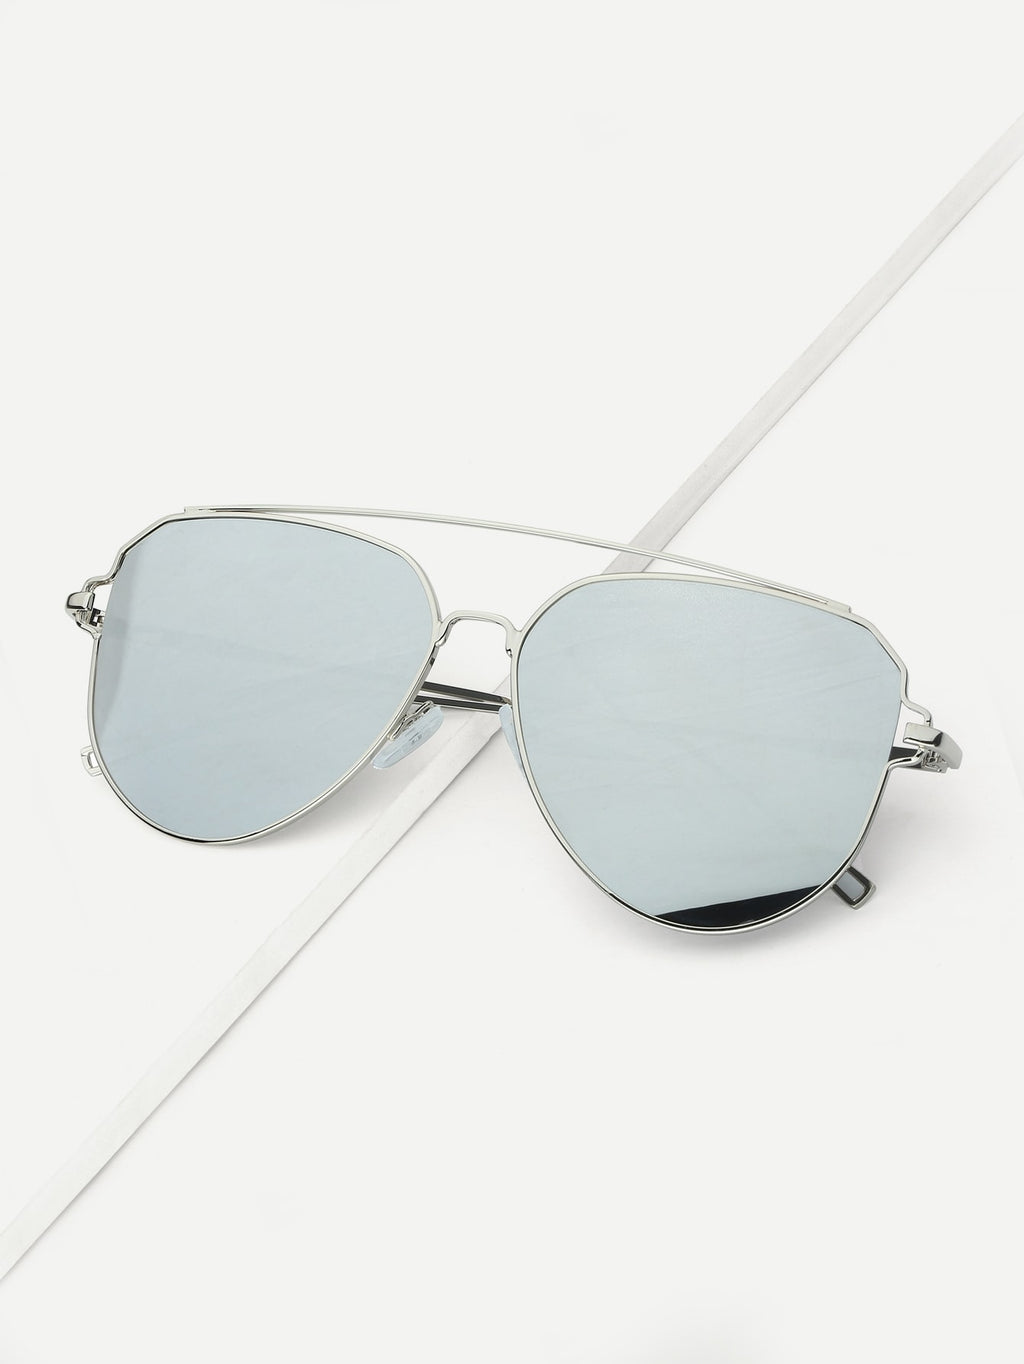 Men's Sunglasses - Top Bar Mirror Lens Sunglasses